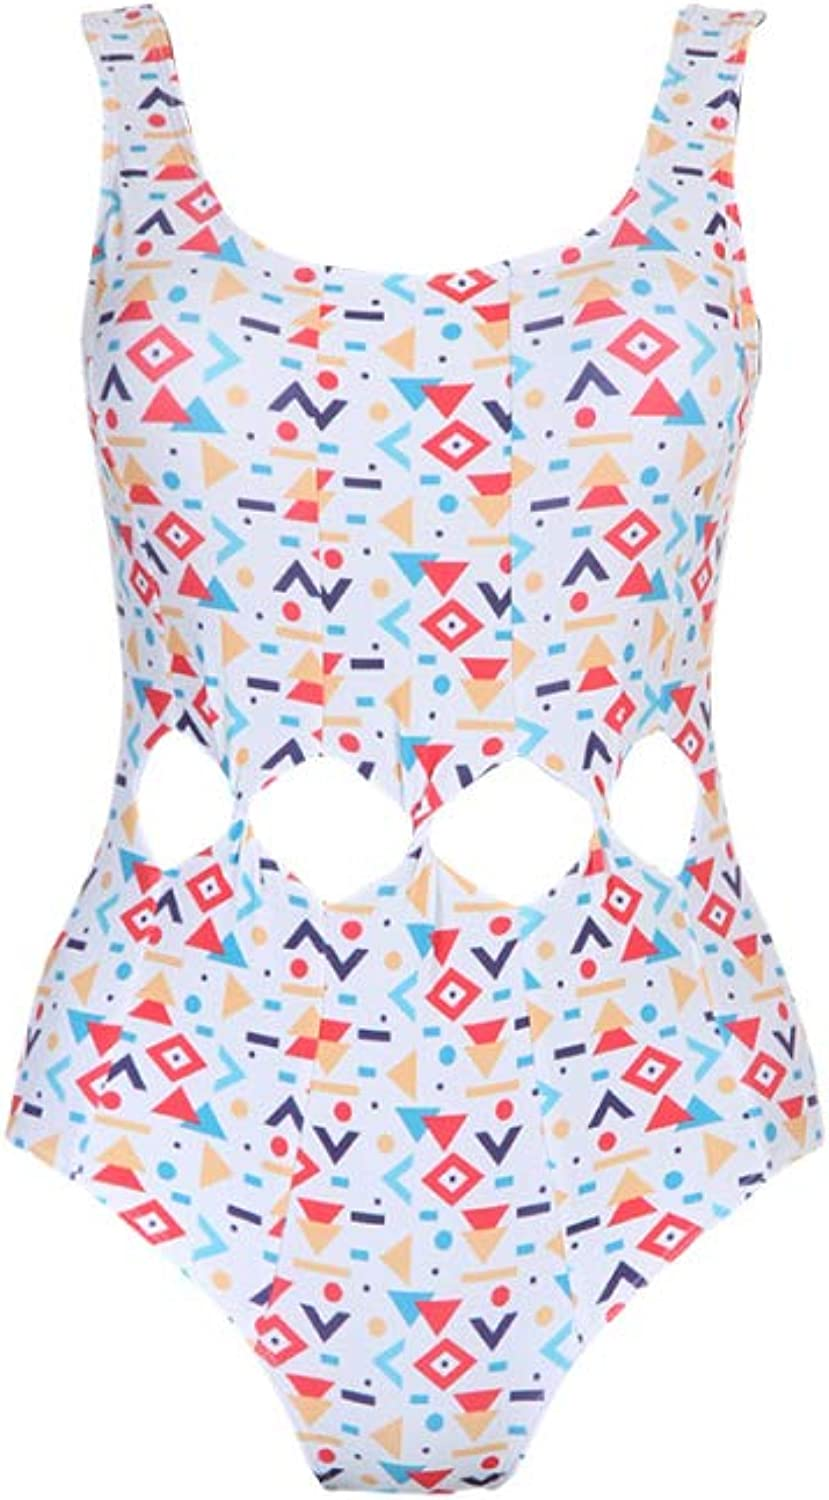 Perfect Home Women's Swimsuit, Printed Pattern, Halter, highWaist, onePiece Sexy Bikini, Polyester Material Fashion (color   White, Size   XL)